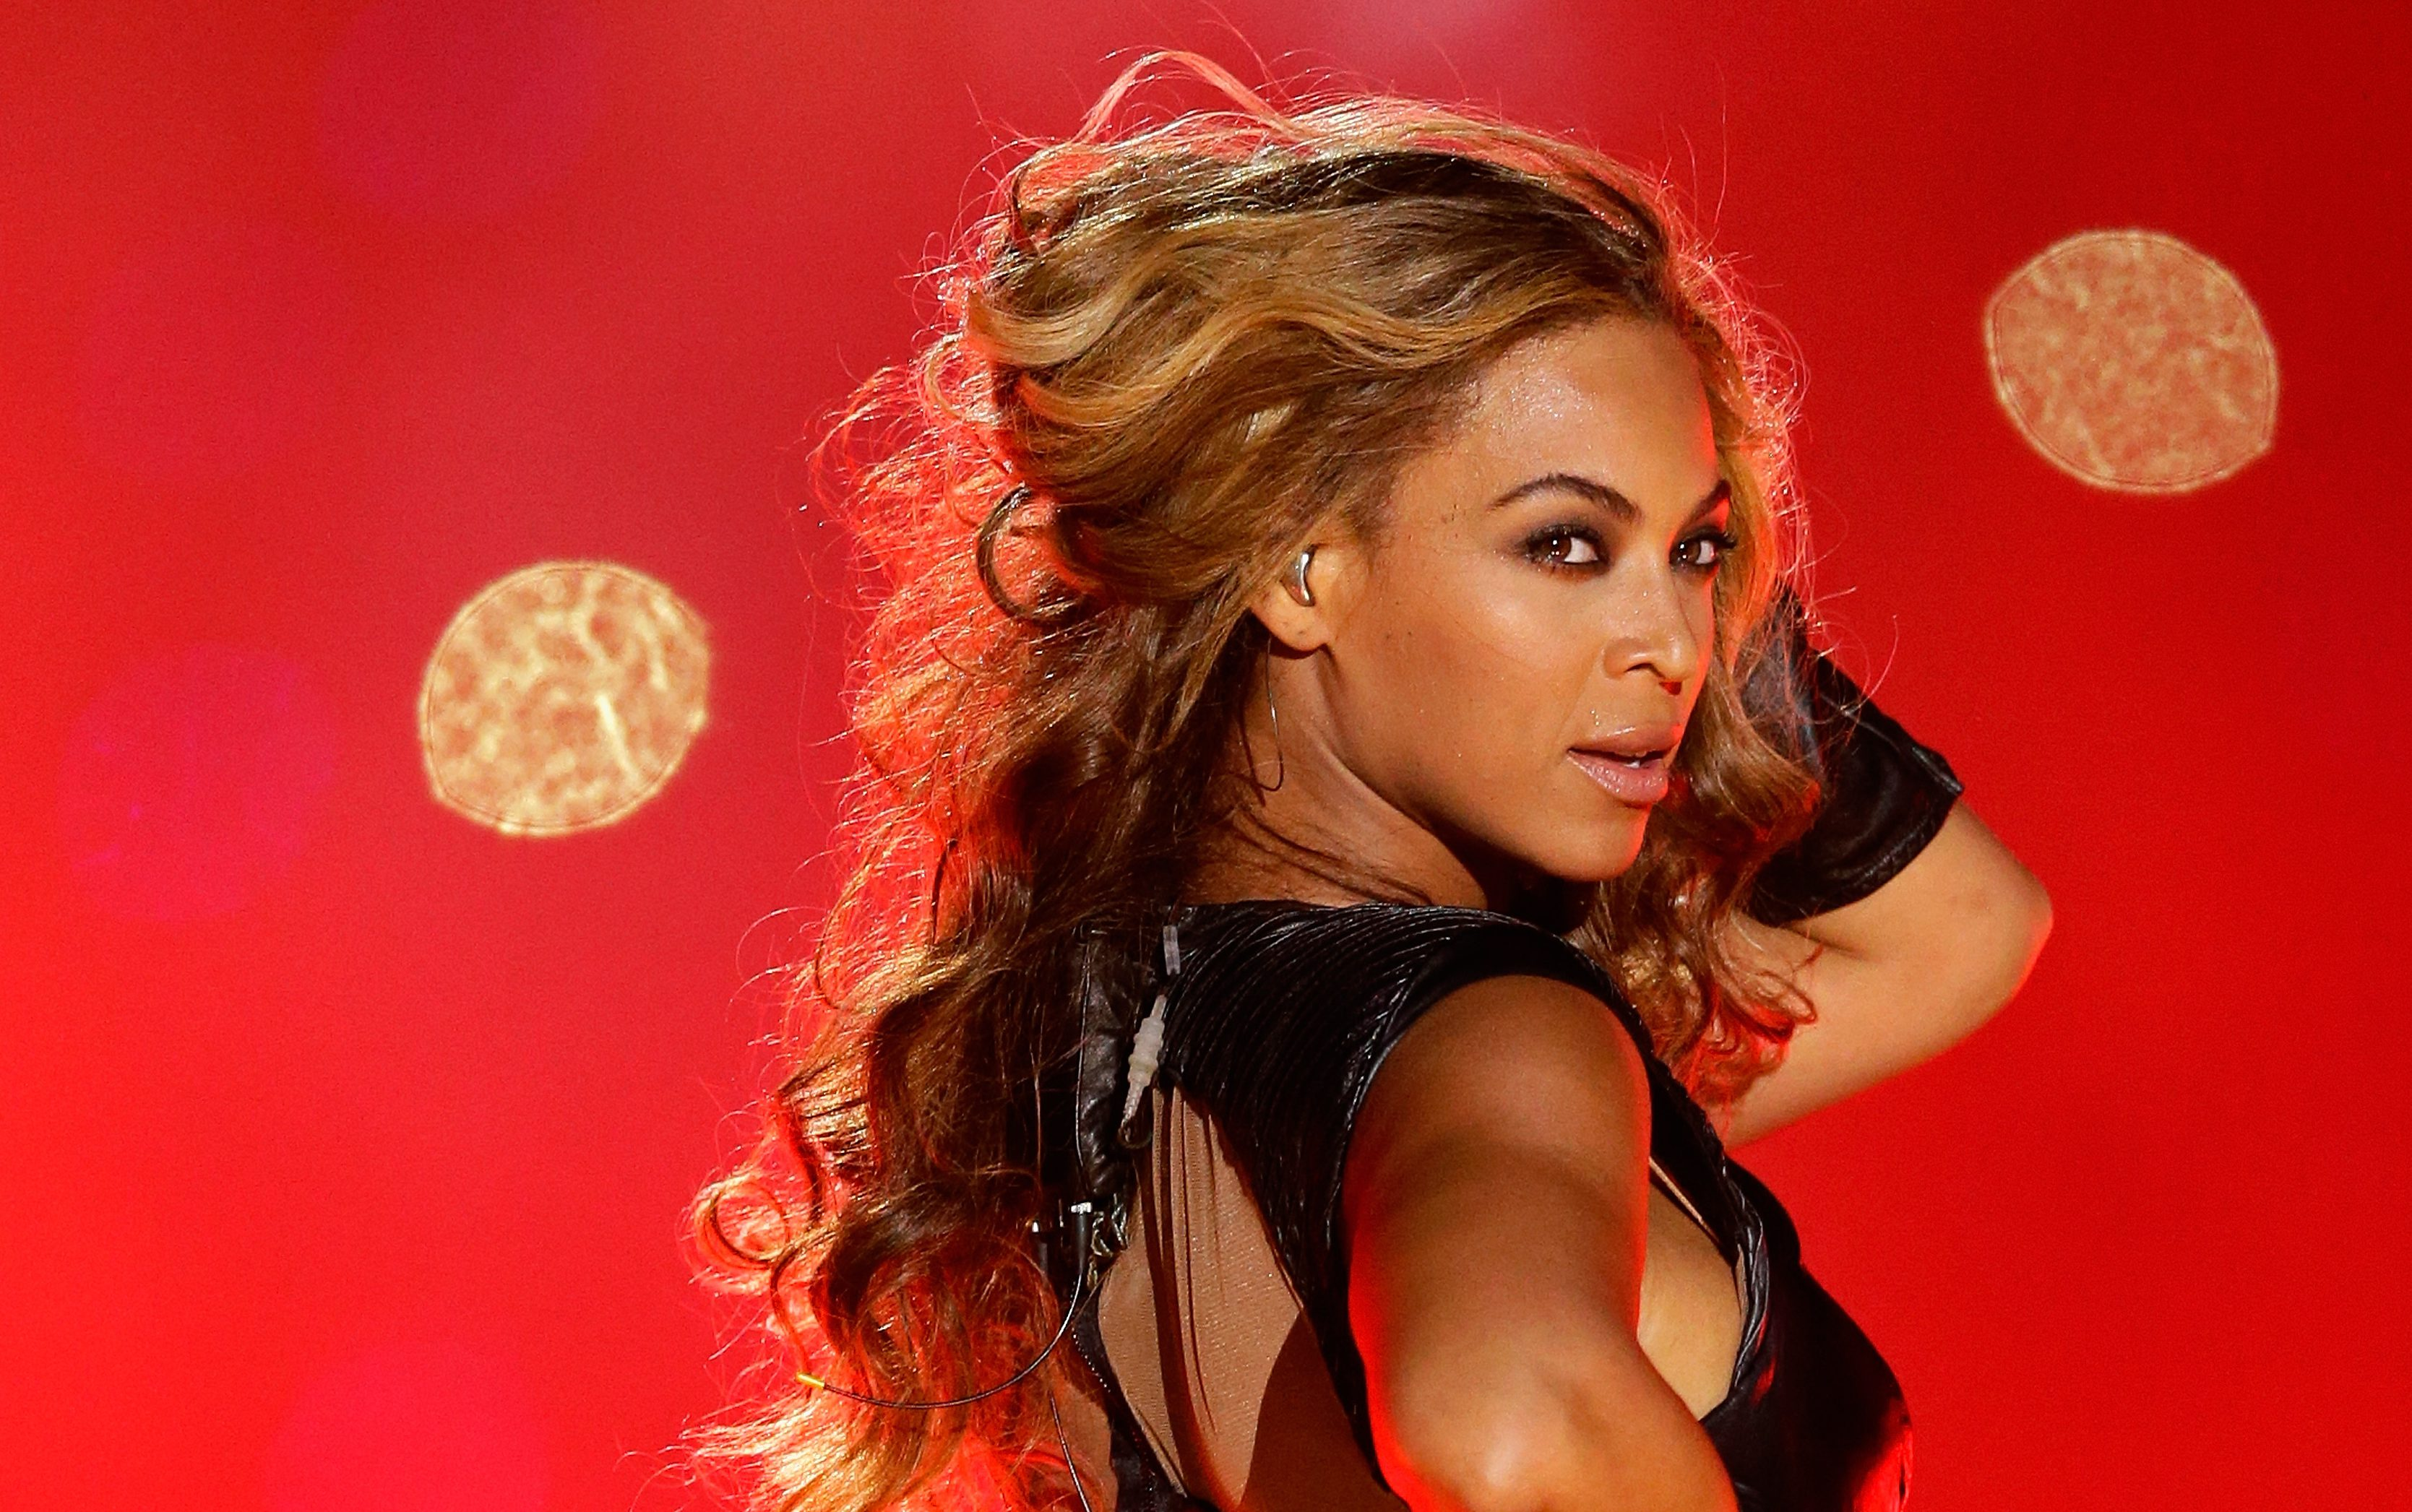 Beyonce's tour rider is the stuff that calorific dreams are made of